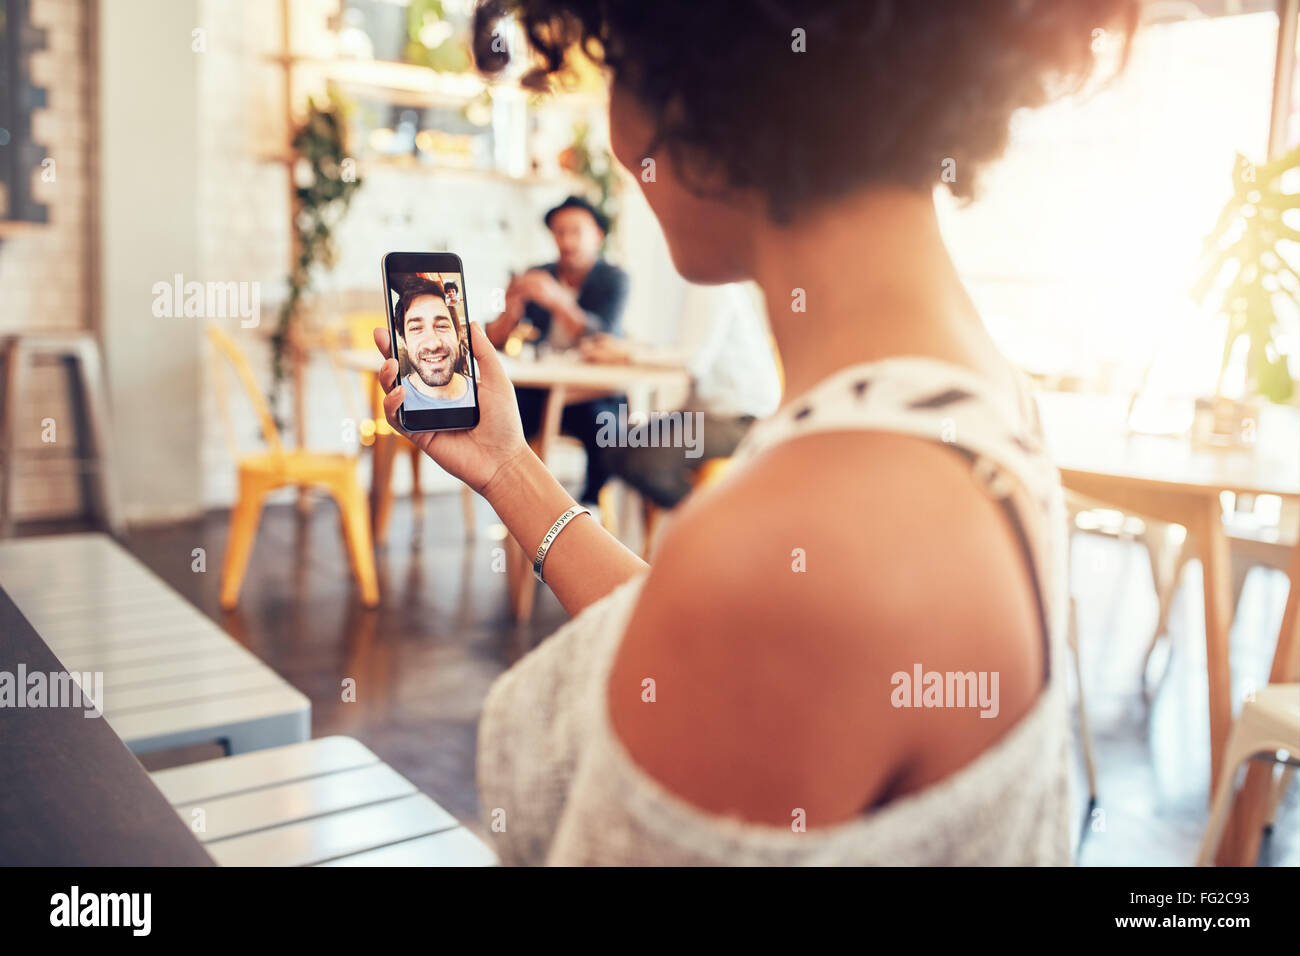 Man and woman talking to each other through a video call on a smartphone. Young woman having a videochat with man - Stock Image